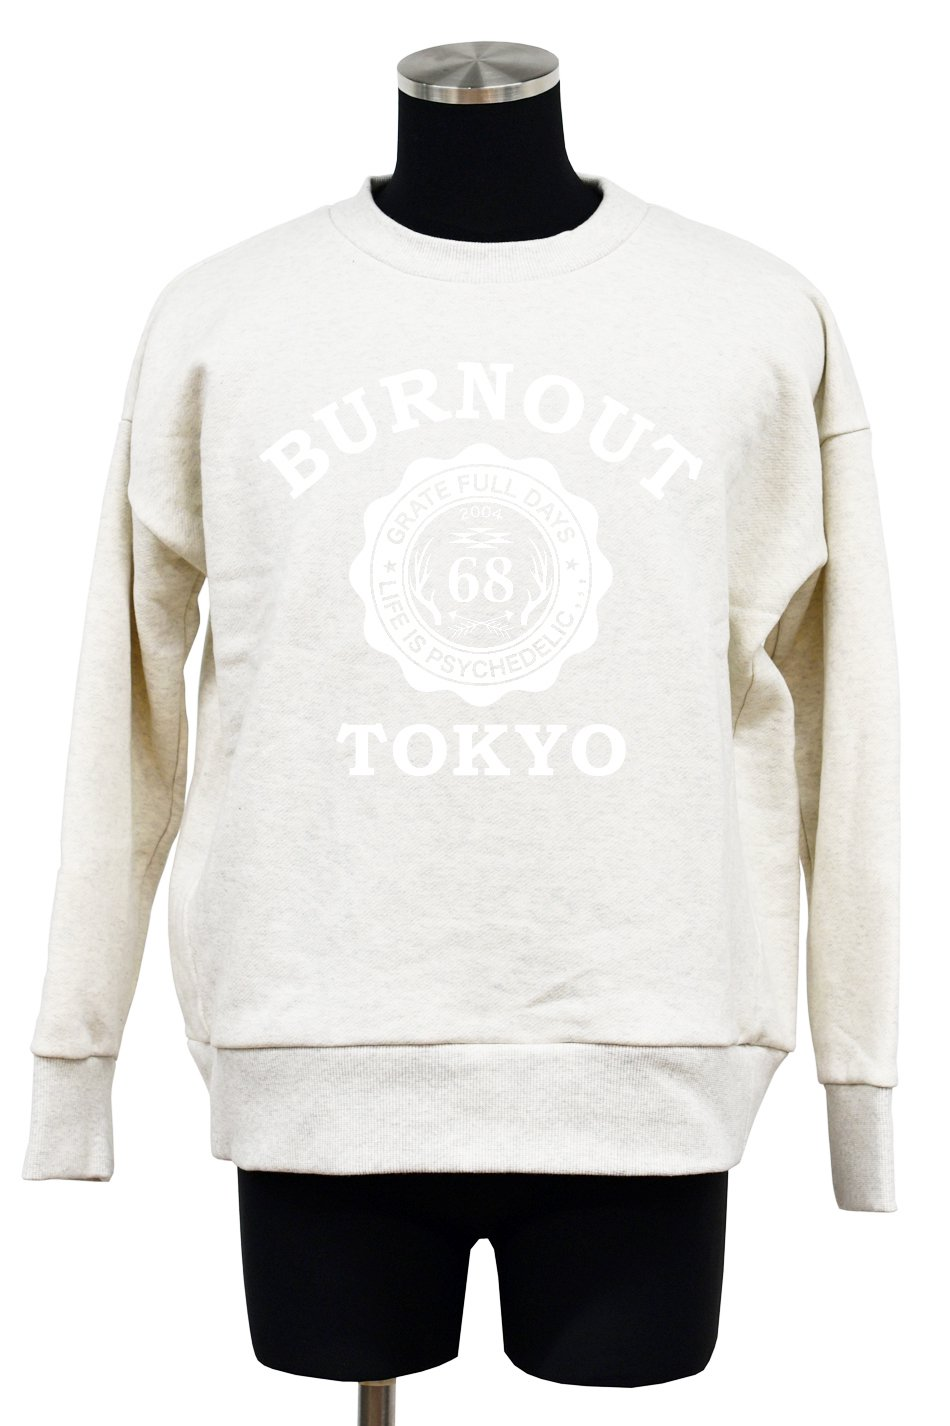 Burnout(バーンアウト)BURNOUT TOKYO 裏毛起毛ワイドプルオーバー2017 / オートミール<img class='new_mark_img2' src='//img.shop-pro.jp/img/new/icons5.gif' style='border:none;display:inline;margin:0px;padding:0px;width:auto;' />